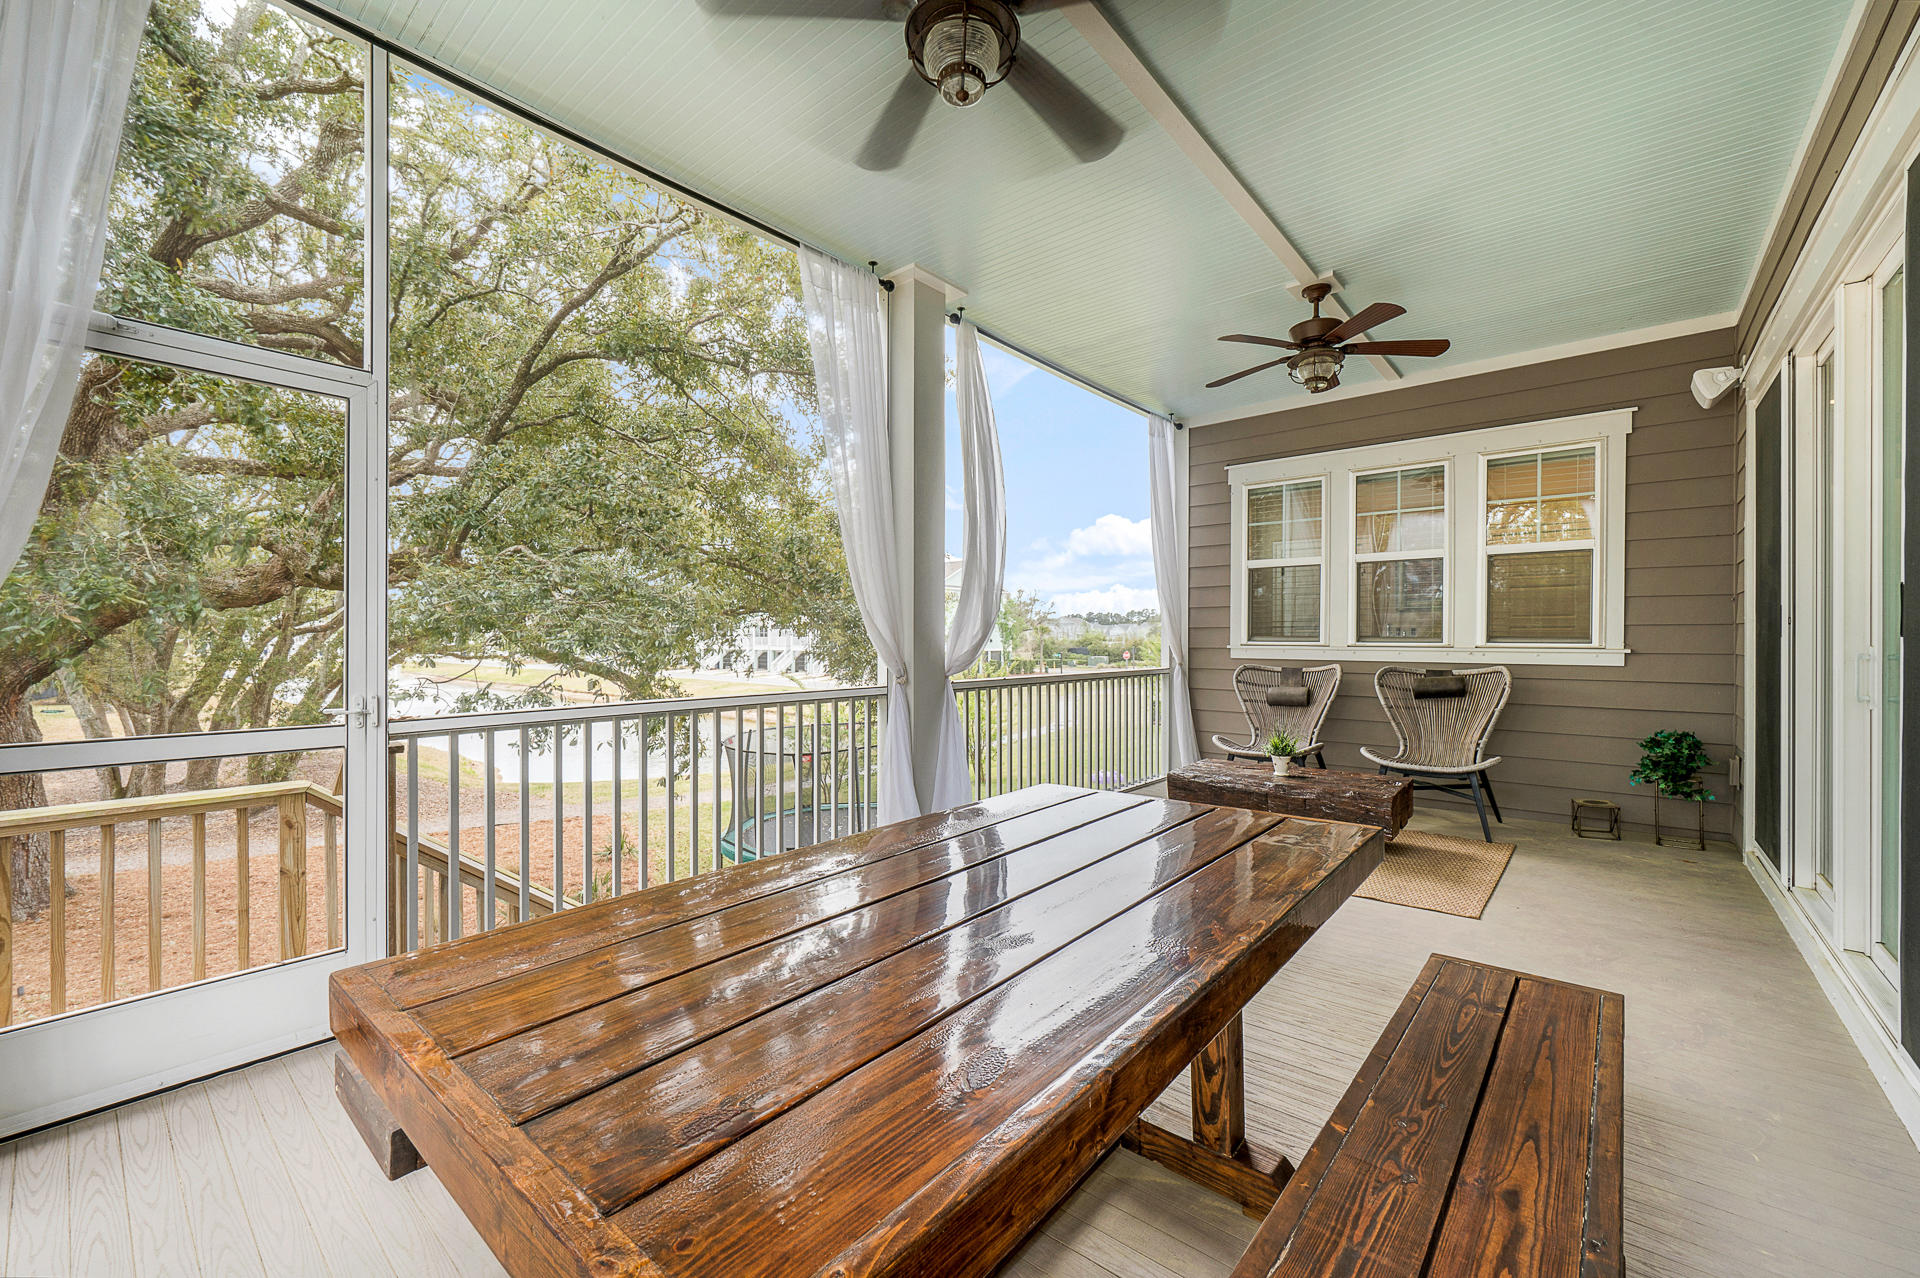 Oyster Point Homes For Sale - 2213 Skyler, Mount Pleasant, SC - 1